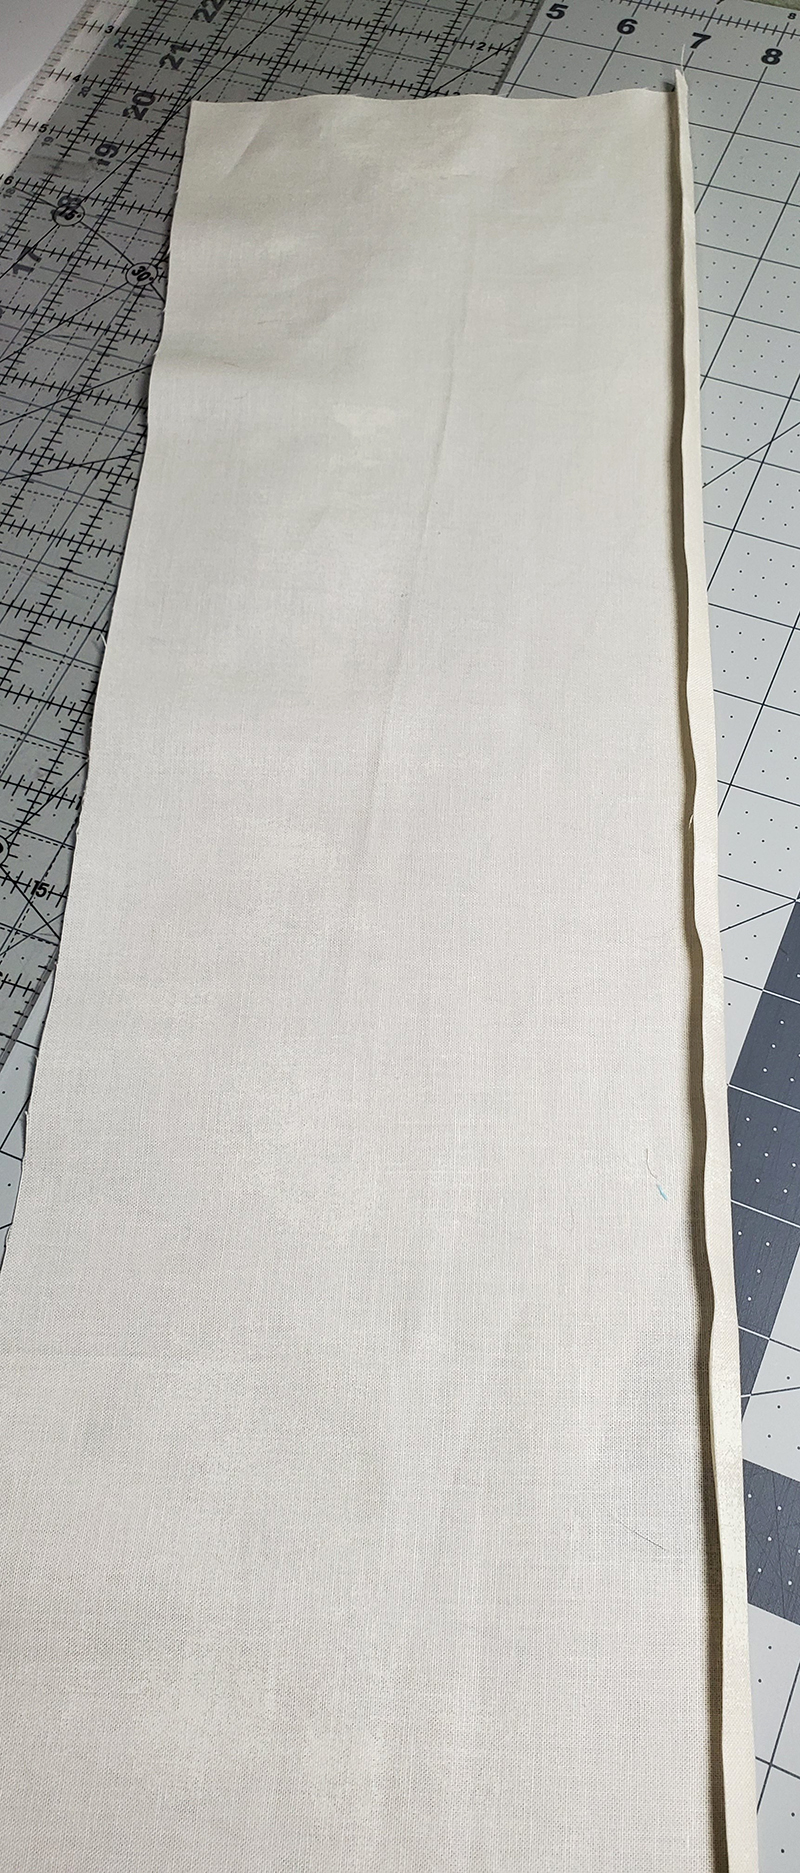 fold piece D and press